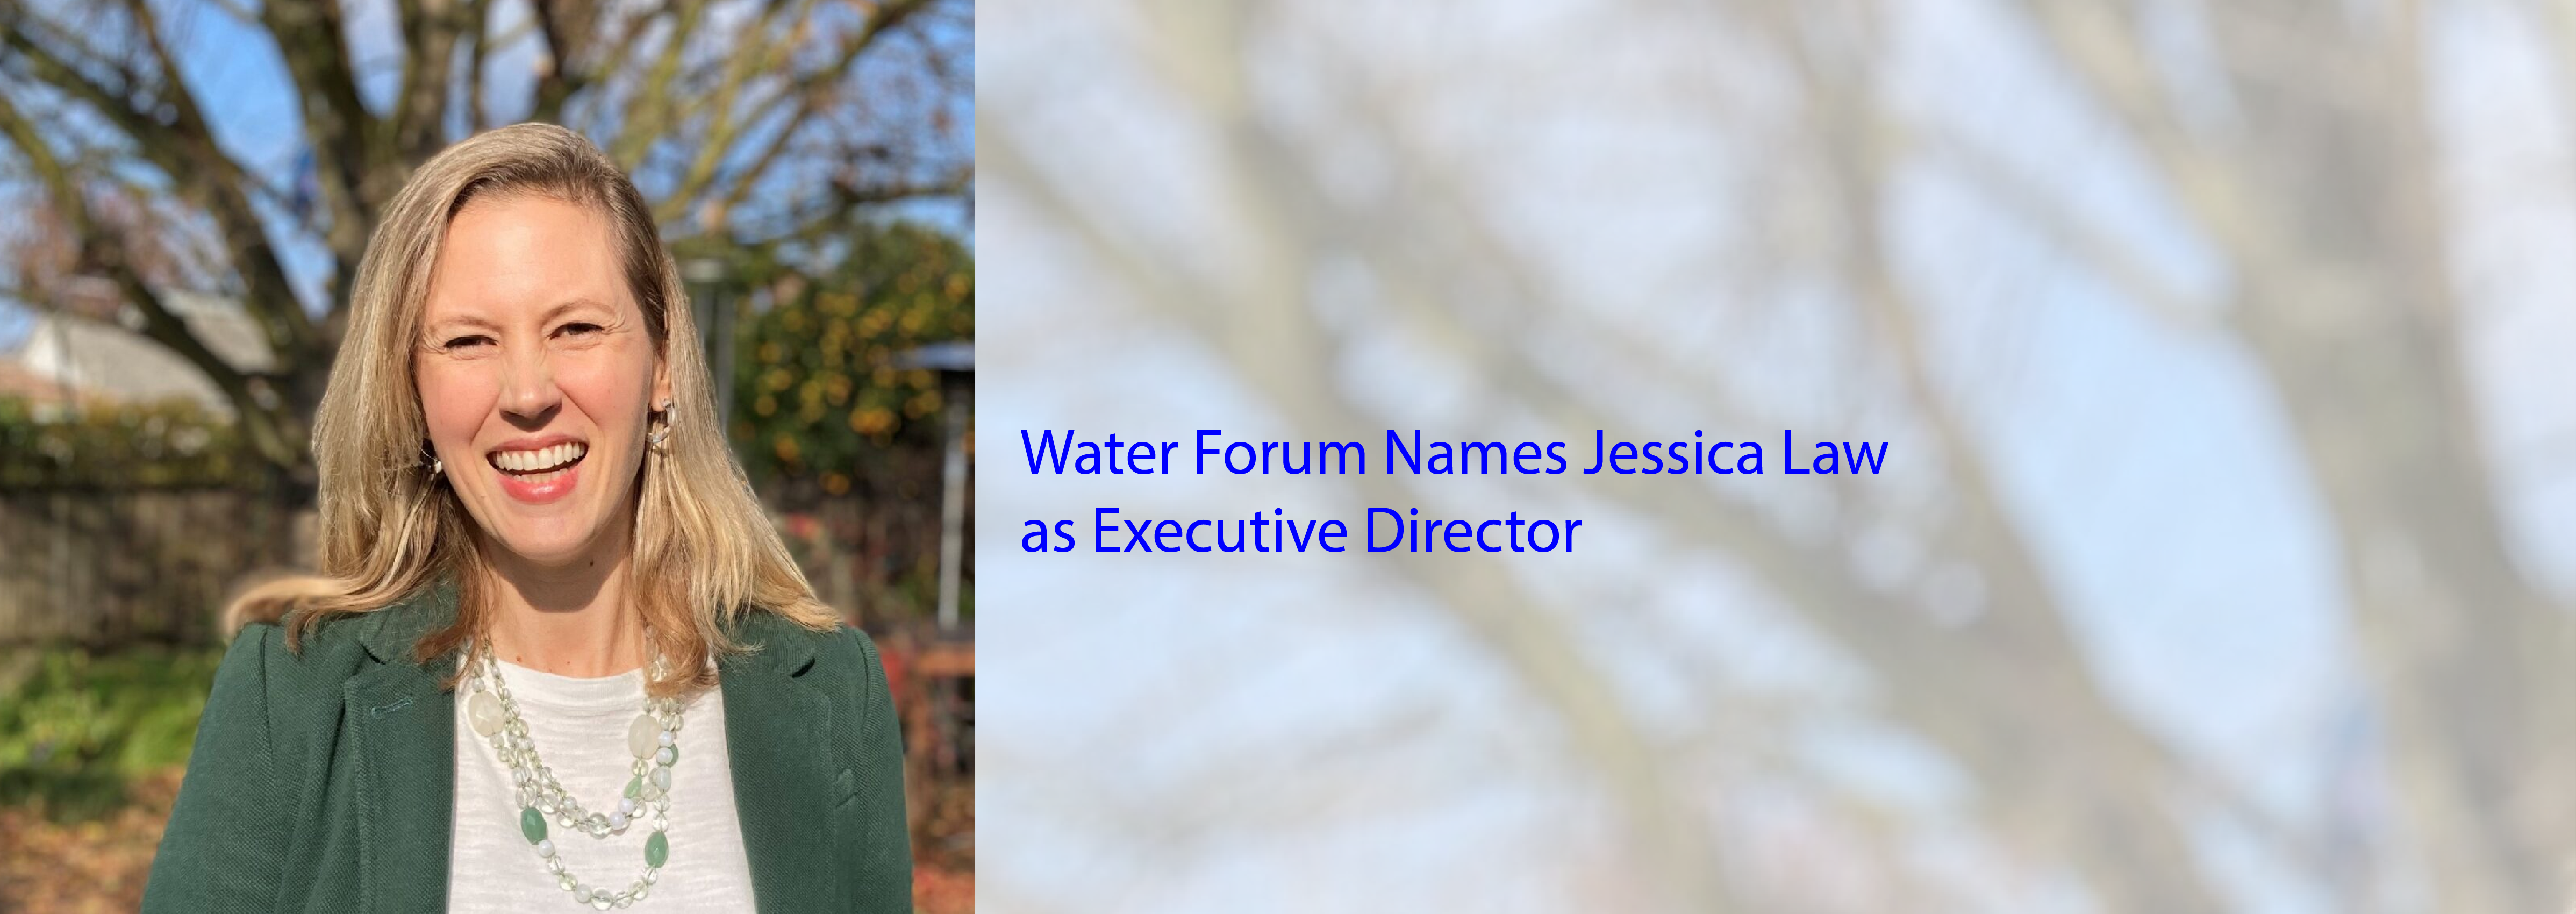 Water Forum Names Jessica Law as Executive Director